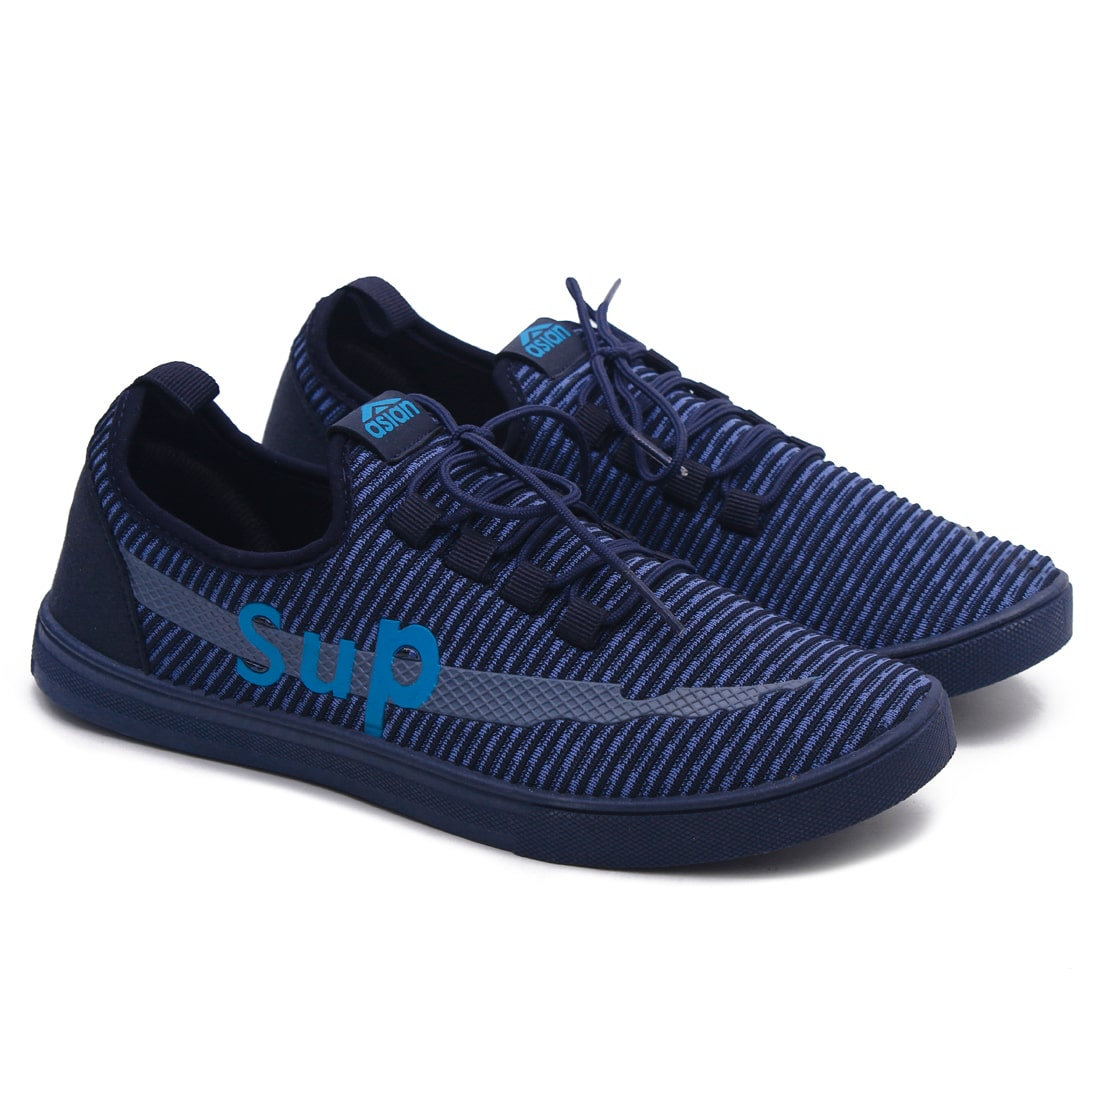 Buy Asian Casual Shoes For Men Online